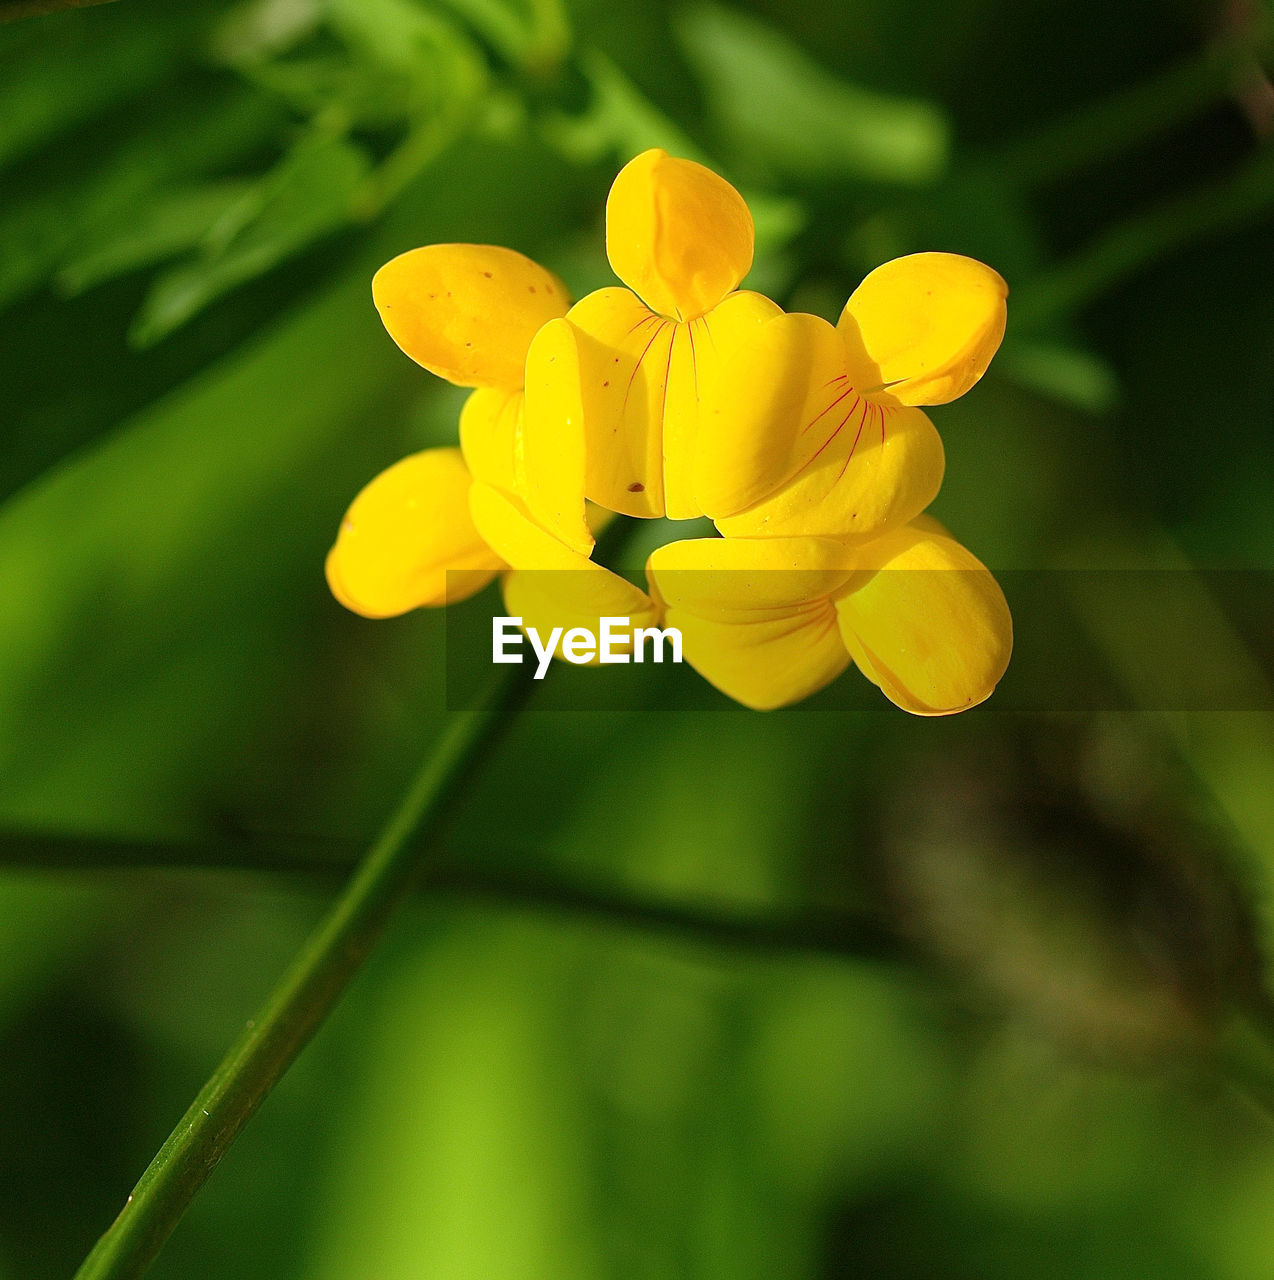 flower, flowering plant, plant, vulnerability, fragility, growth, freshness, petal, beauty in nature, yellow, close-up, inflorescence, flower head, focus on foreground, no people, day, nature, selective focus, outdoors, plant stem, pollen